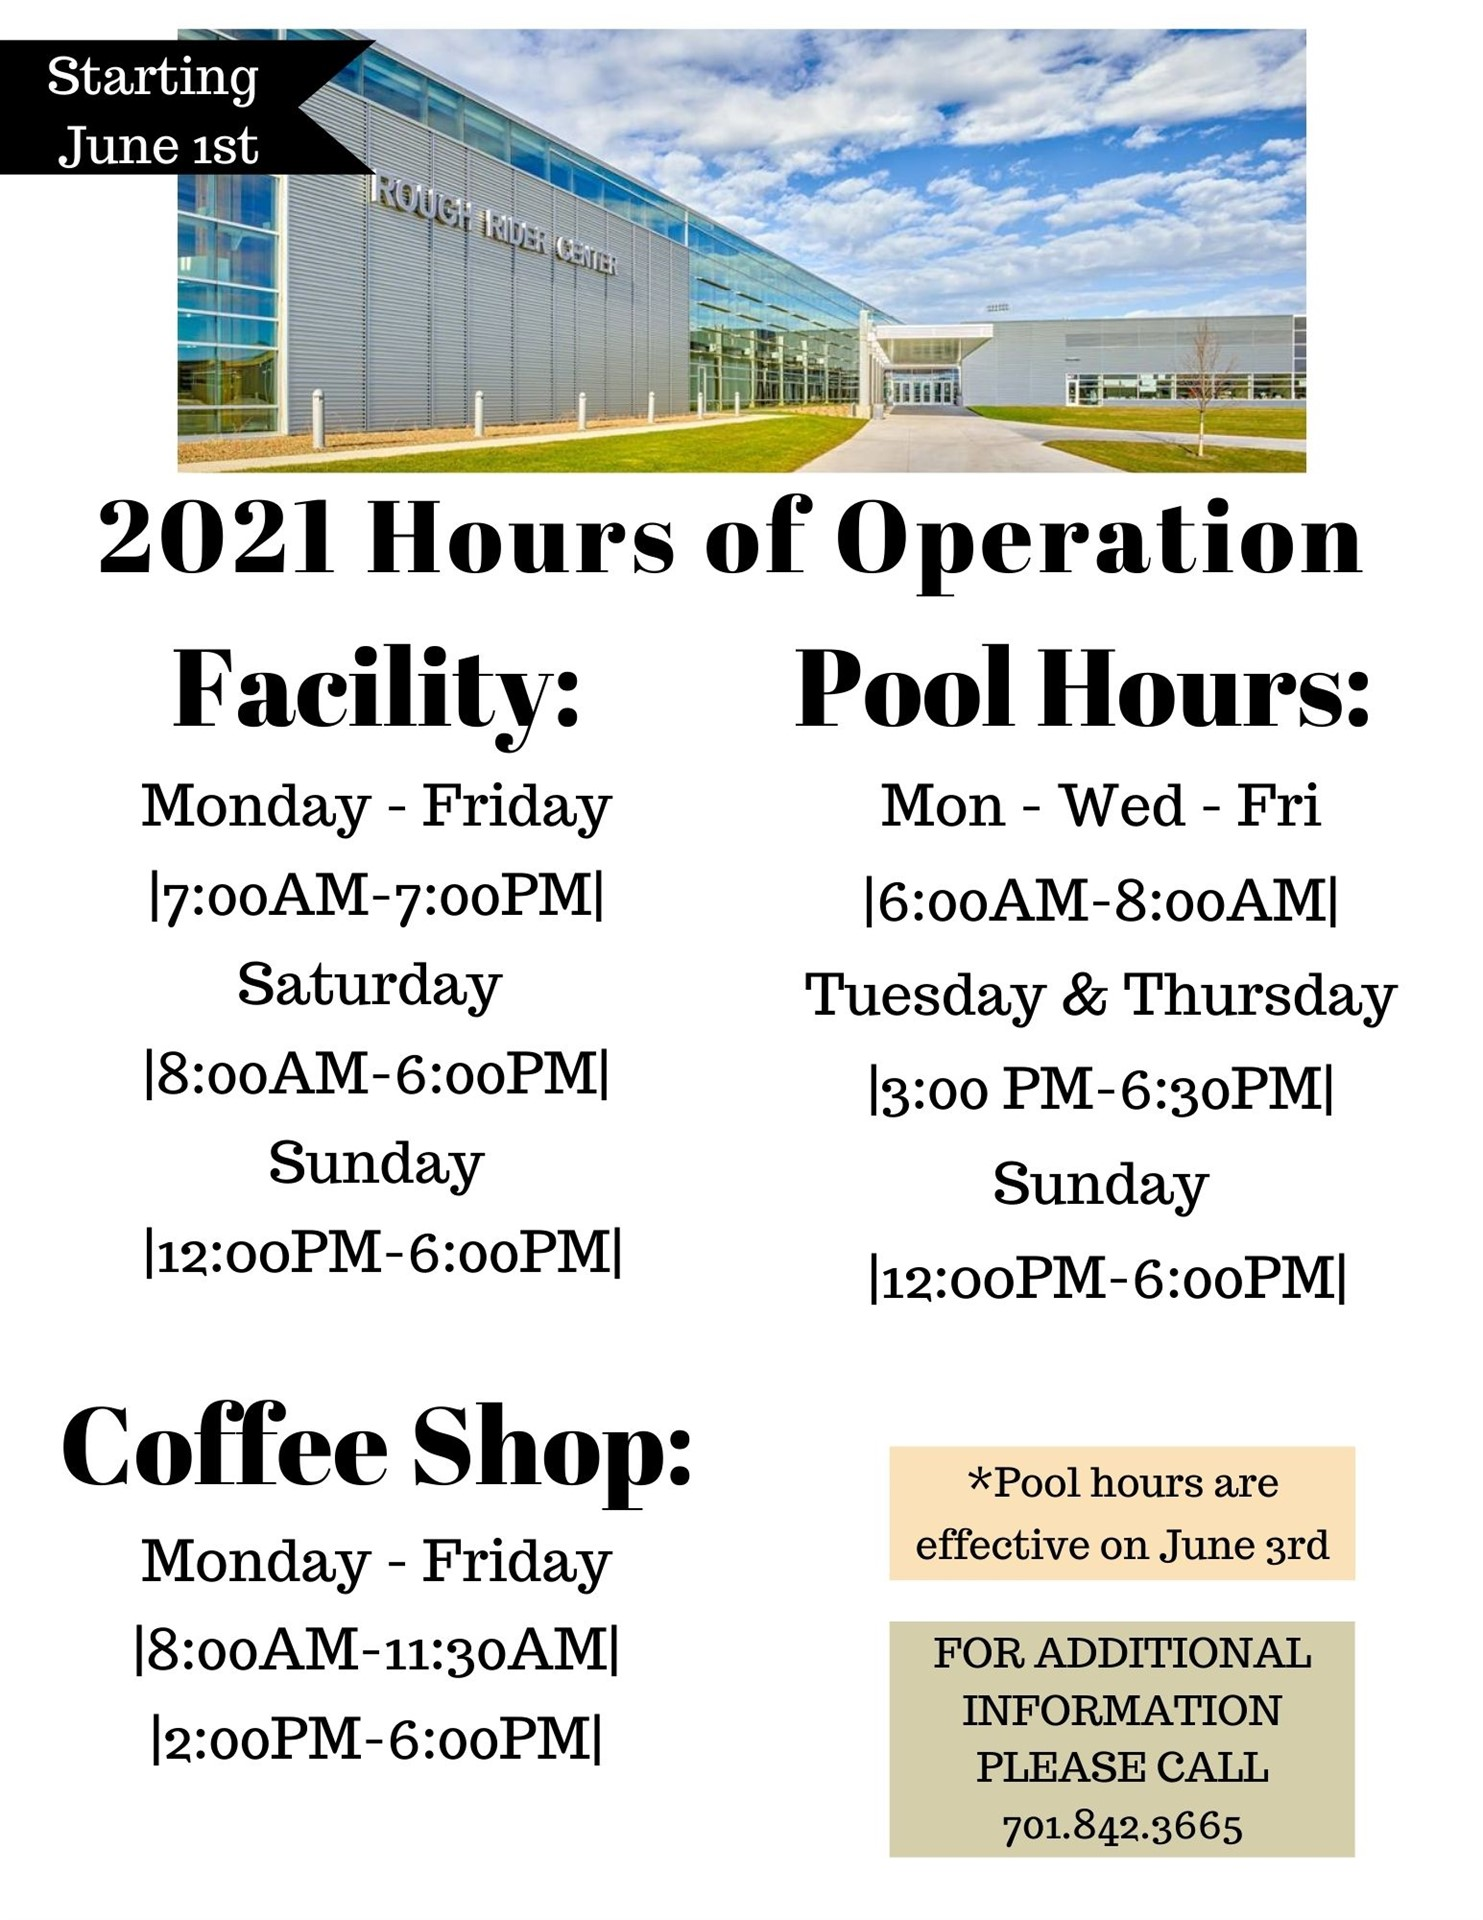 RRC Facility Hours: Starting June 1st